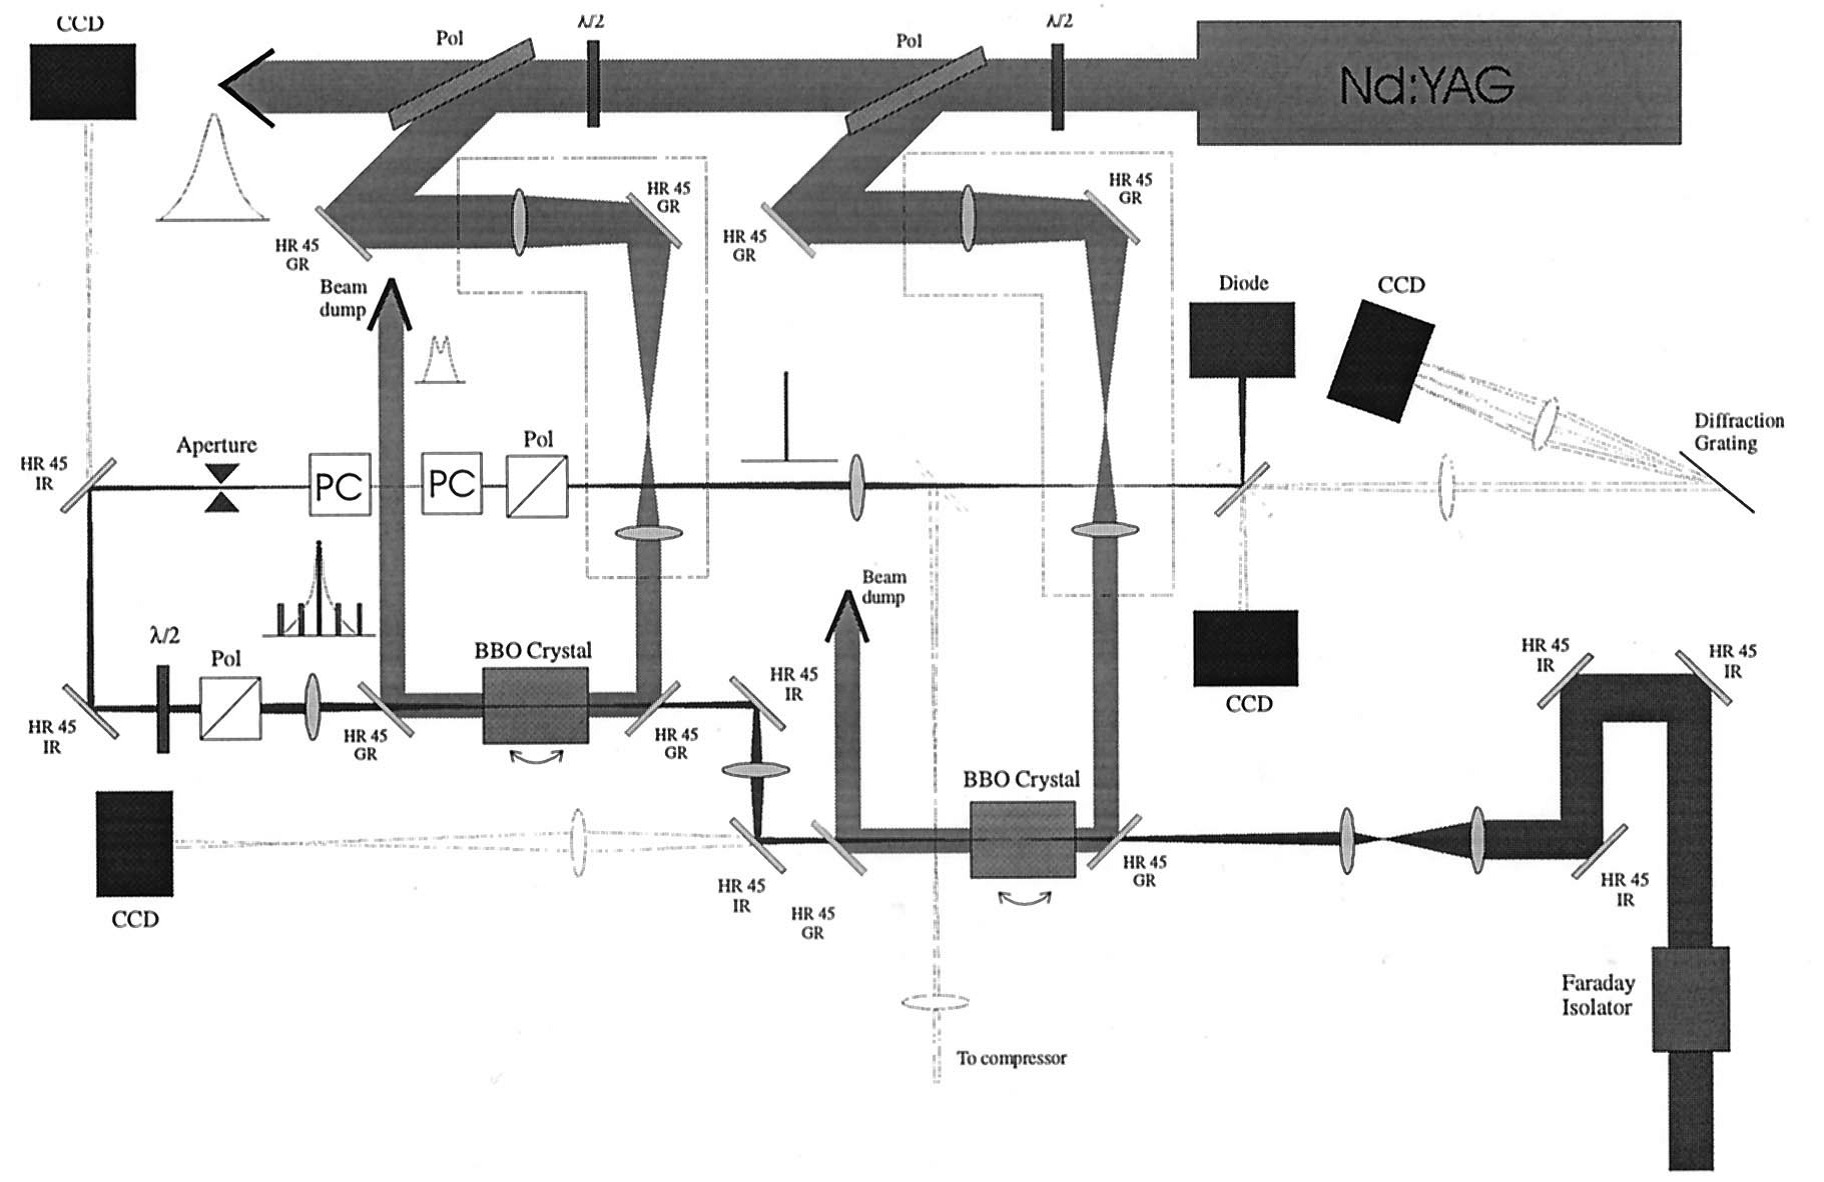 Laser Timeline Air Compressor Wiring Diagram Schematic Sharp Energy Saver Opcpa From Appl Opt 1999 36 7486 93